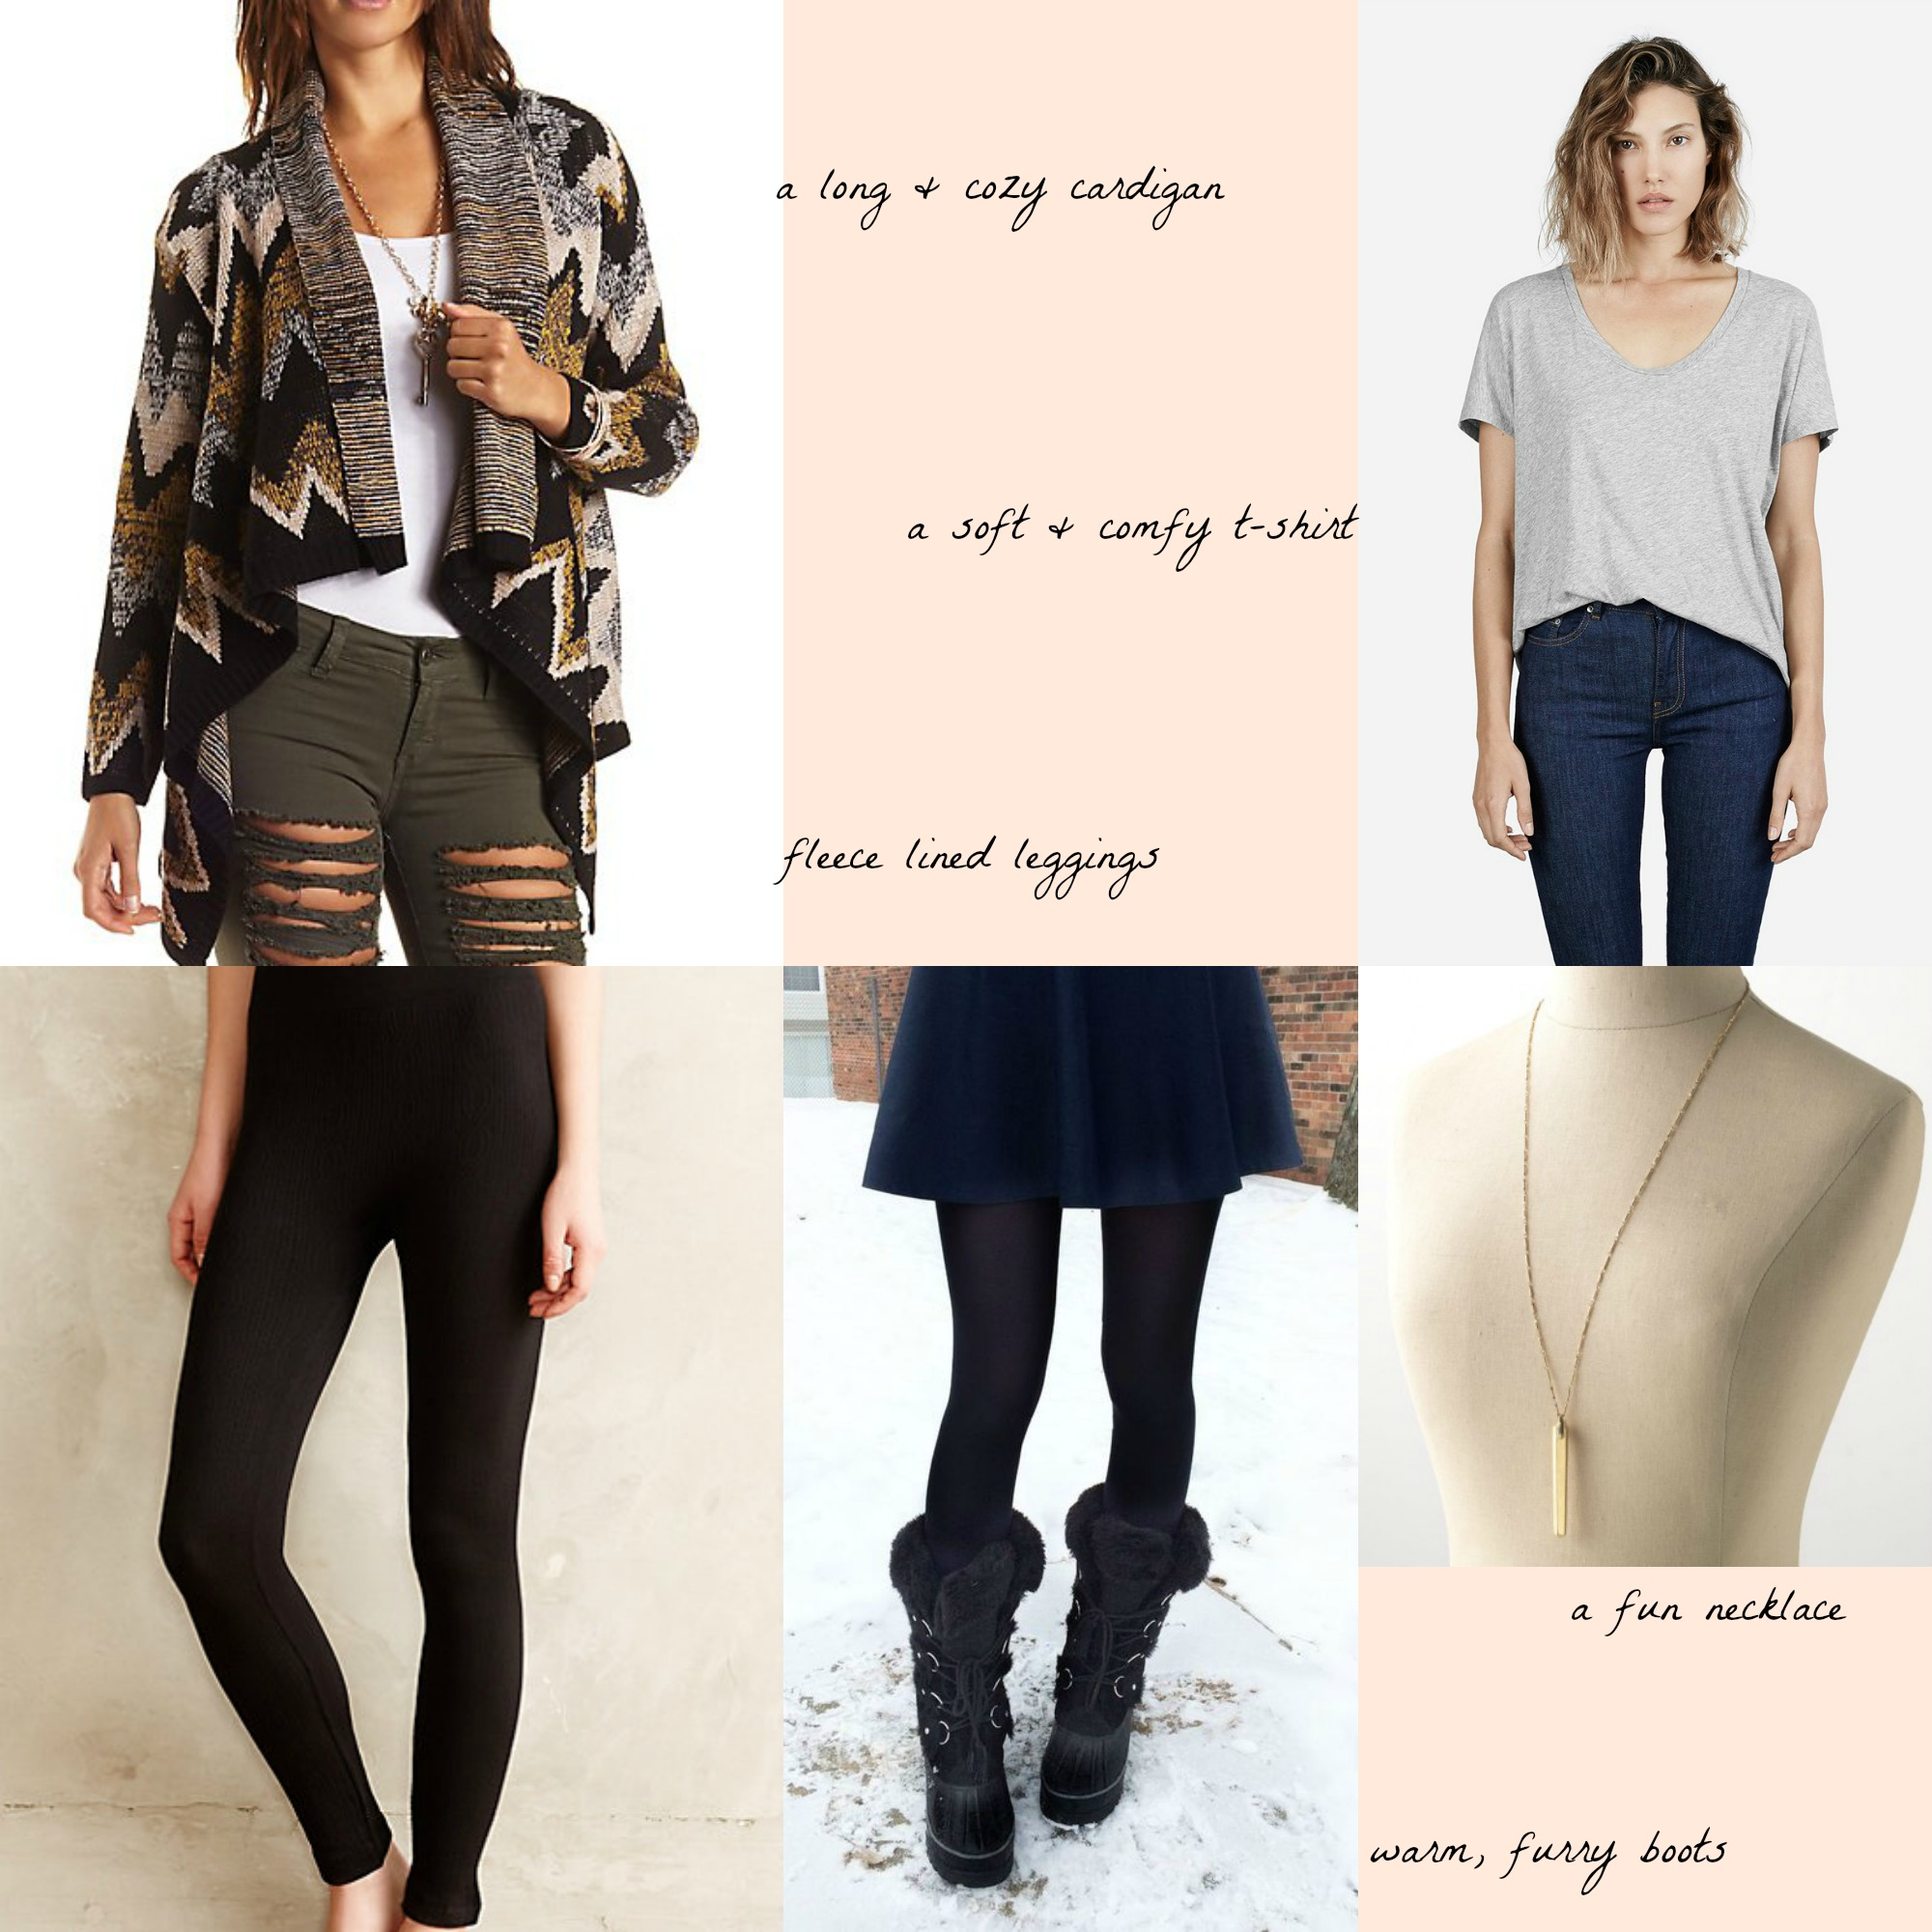 snow-day-outfit-collage.jpg